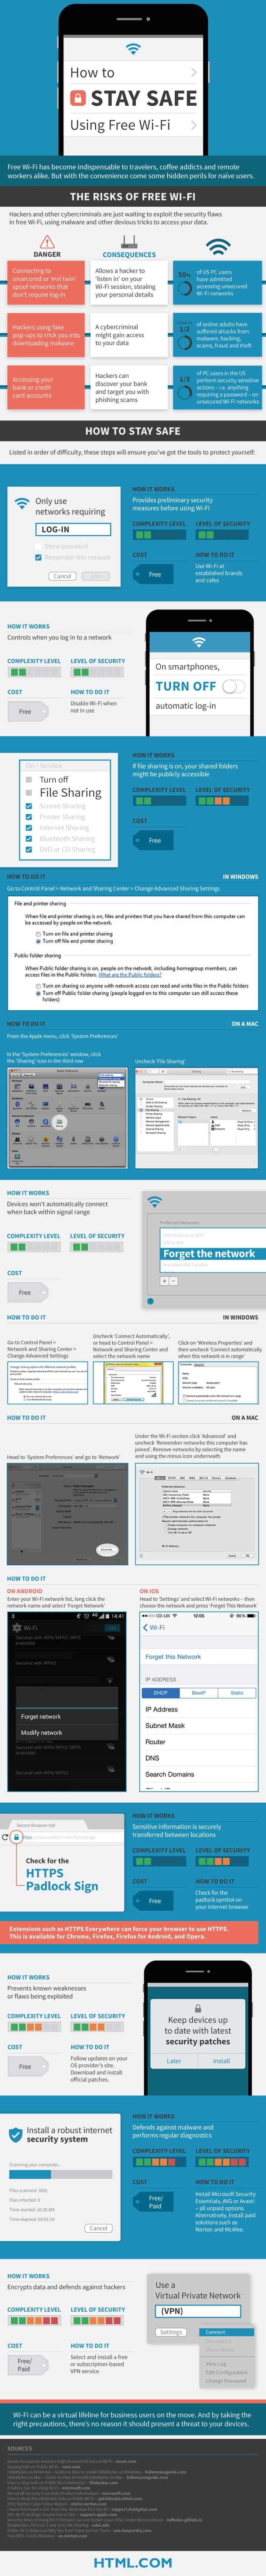 Stay safe using free wifi infographic